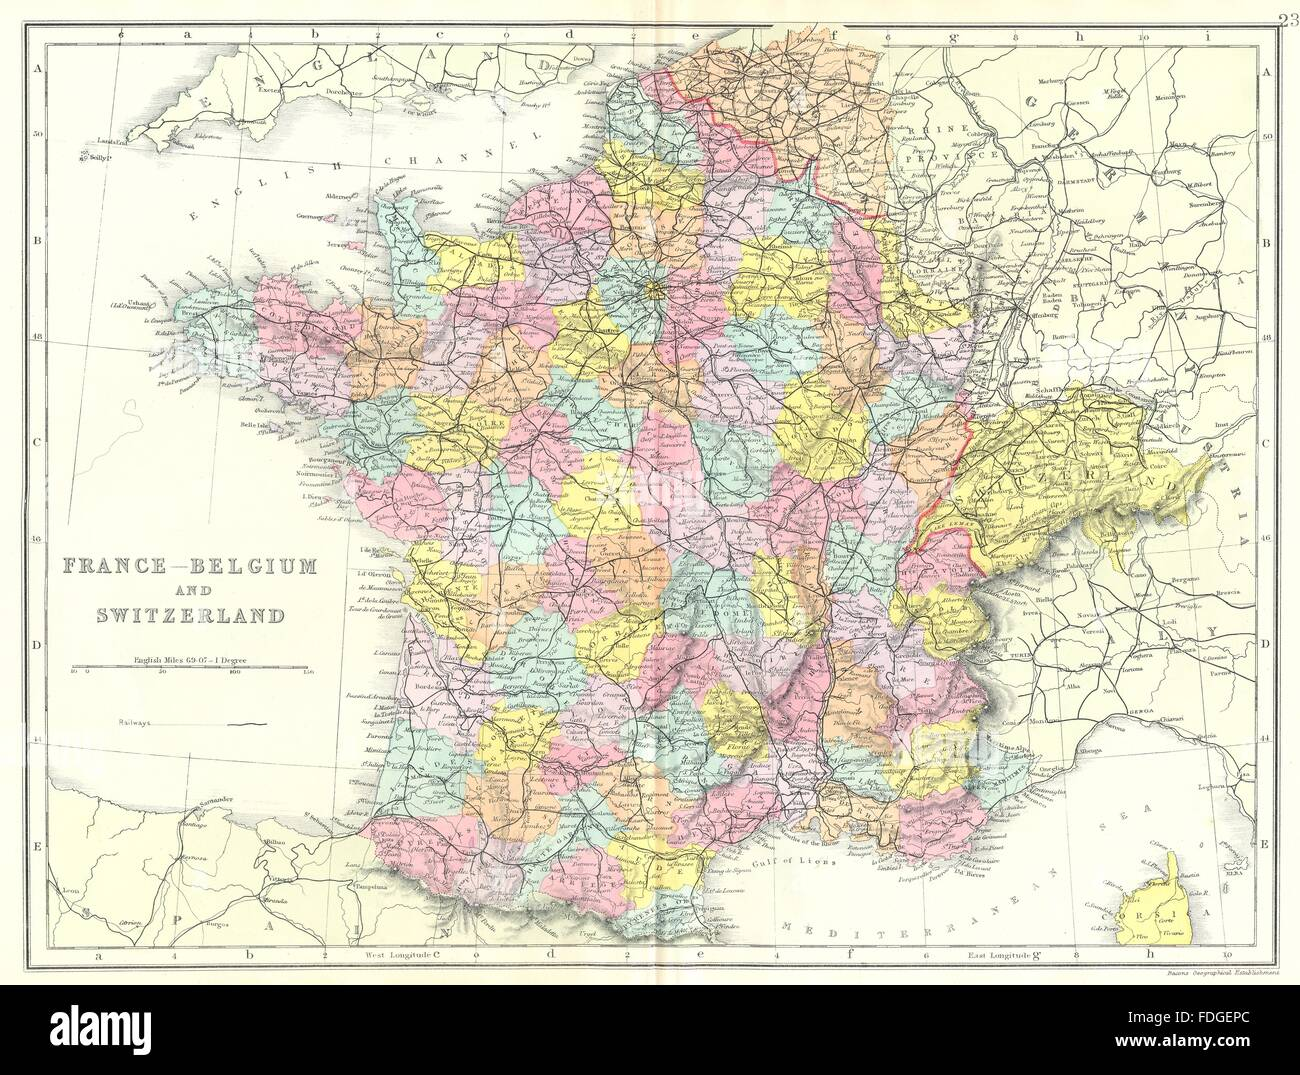 France Belgium Switzerland France Without Alsace Lorraine Bacon – Map of France and Belgium